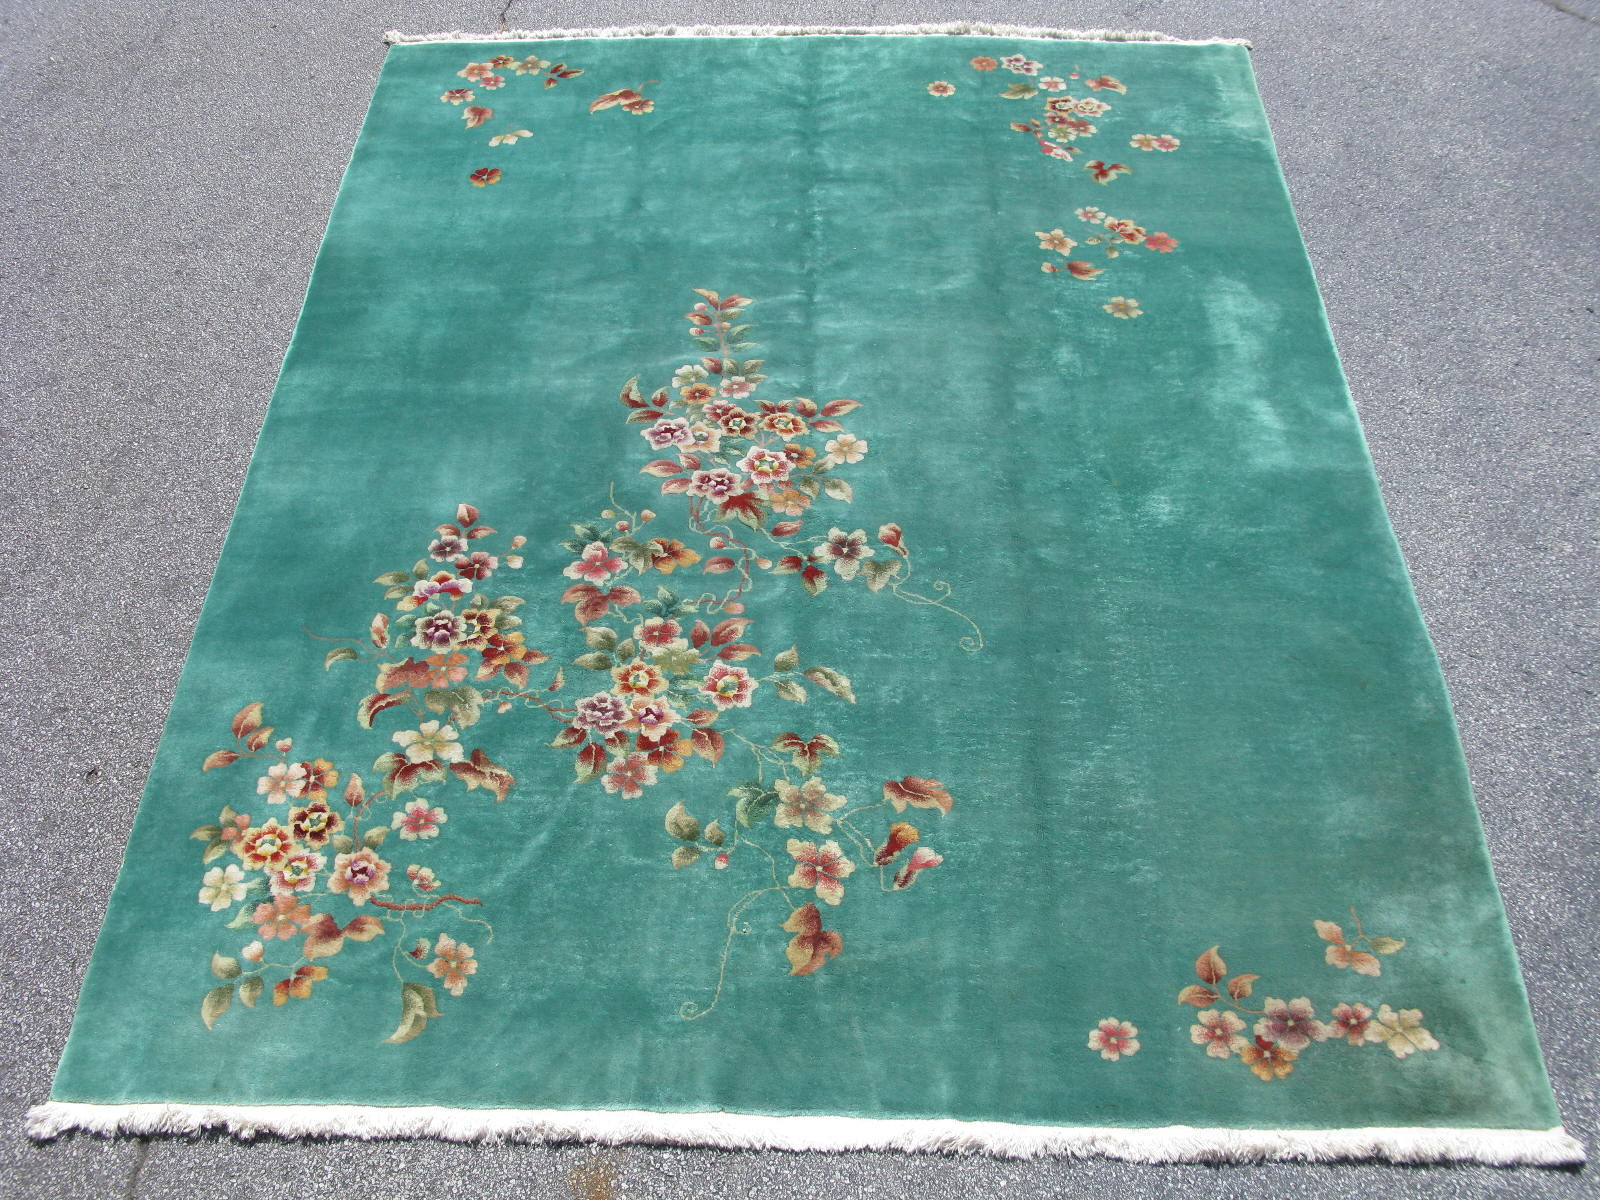 Chinese Art Deco Rug Hand Knotted Wool Green Size 8 9x11 7 44